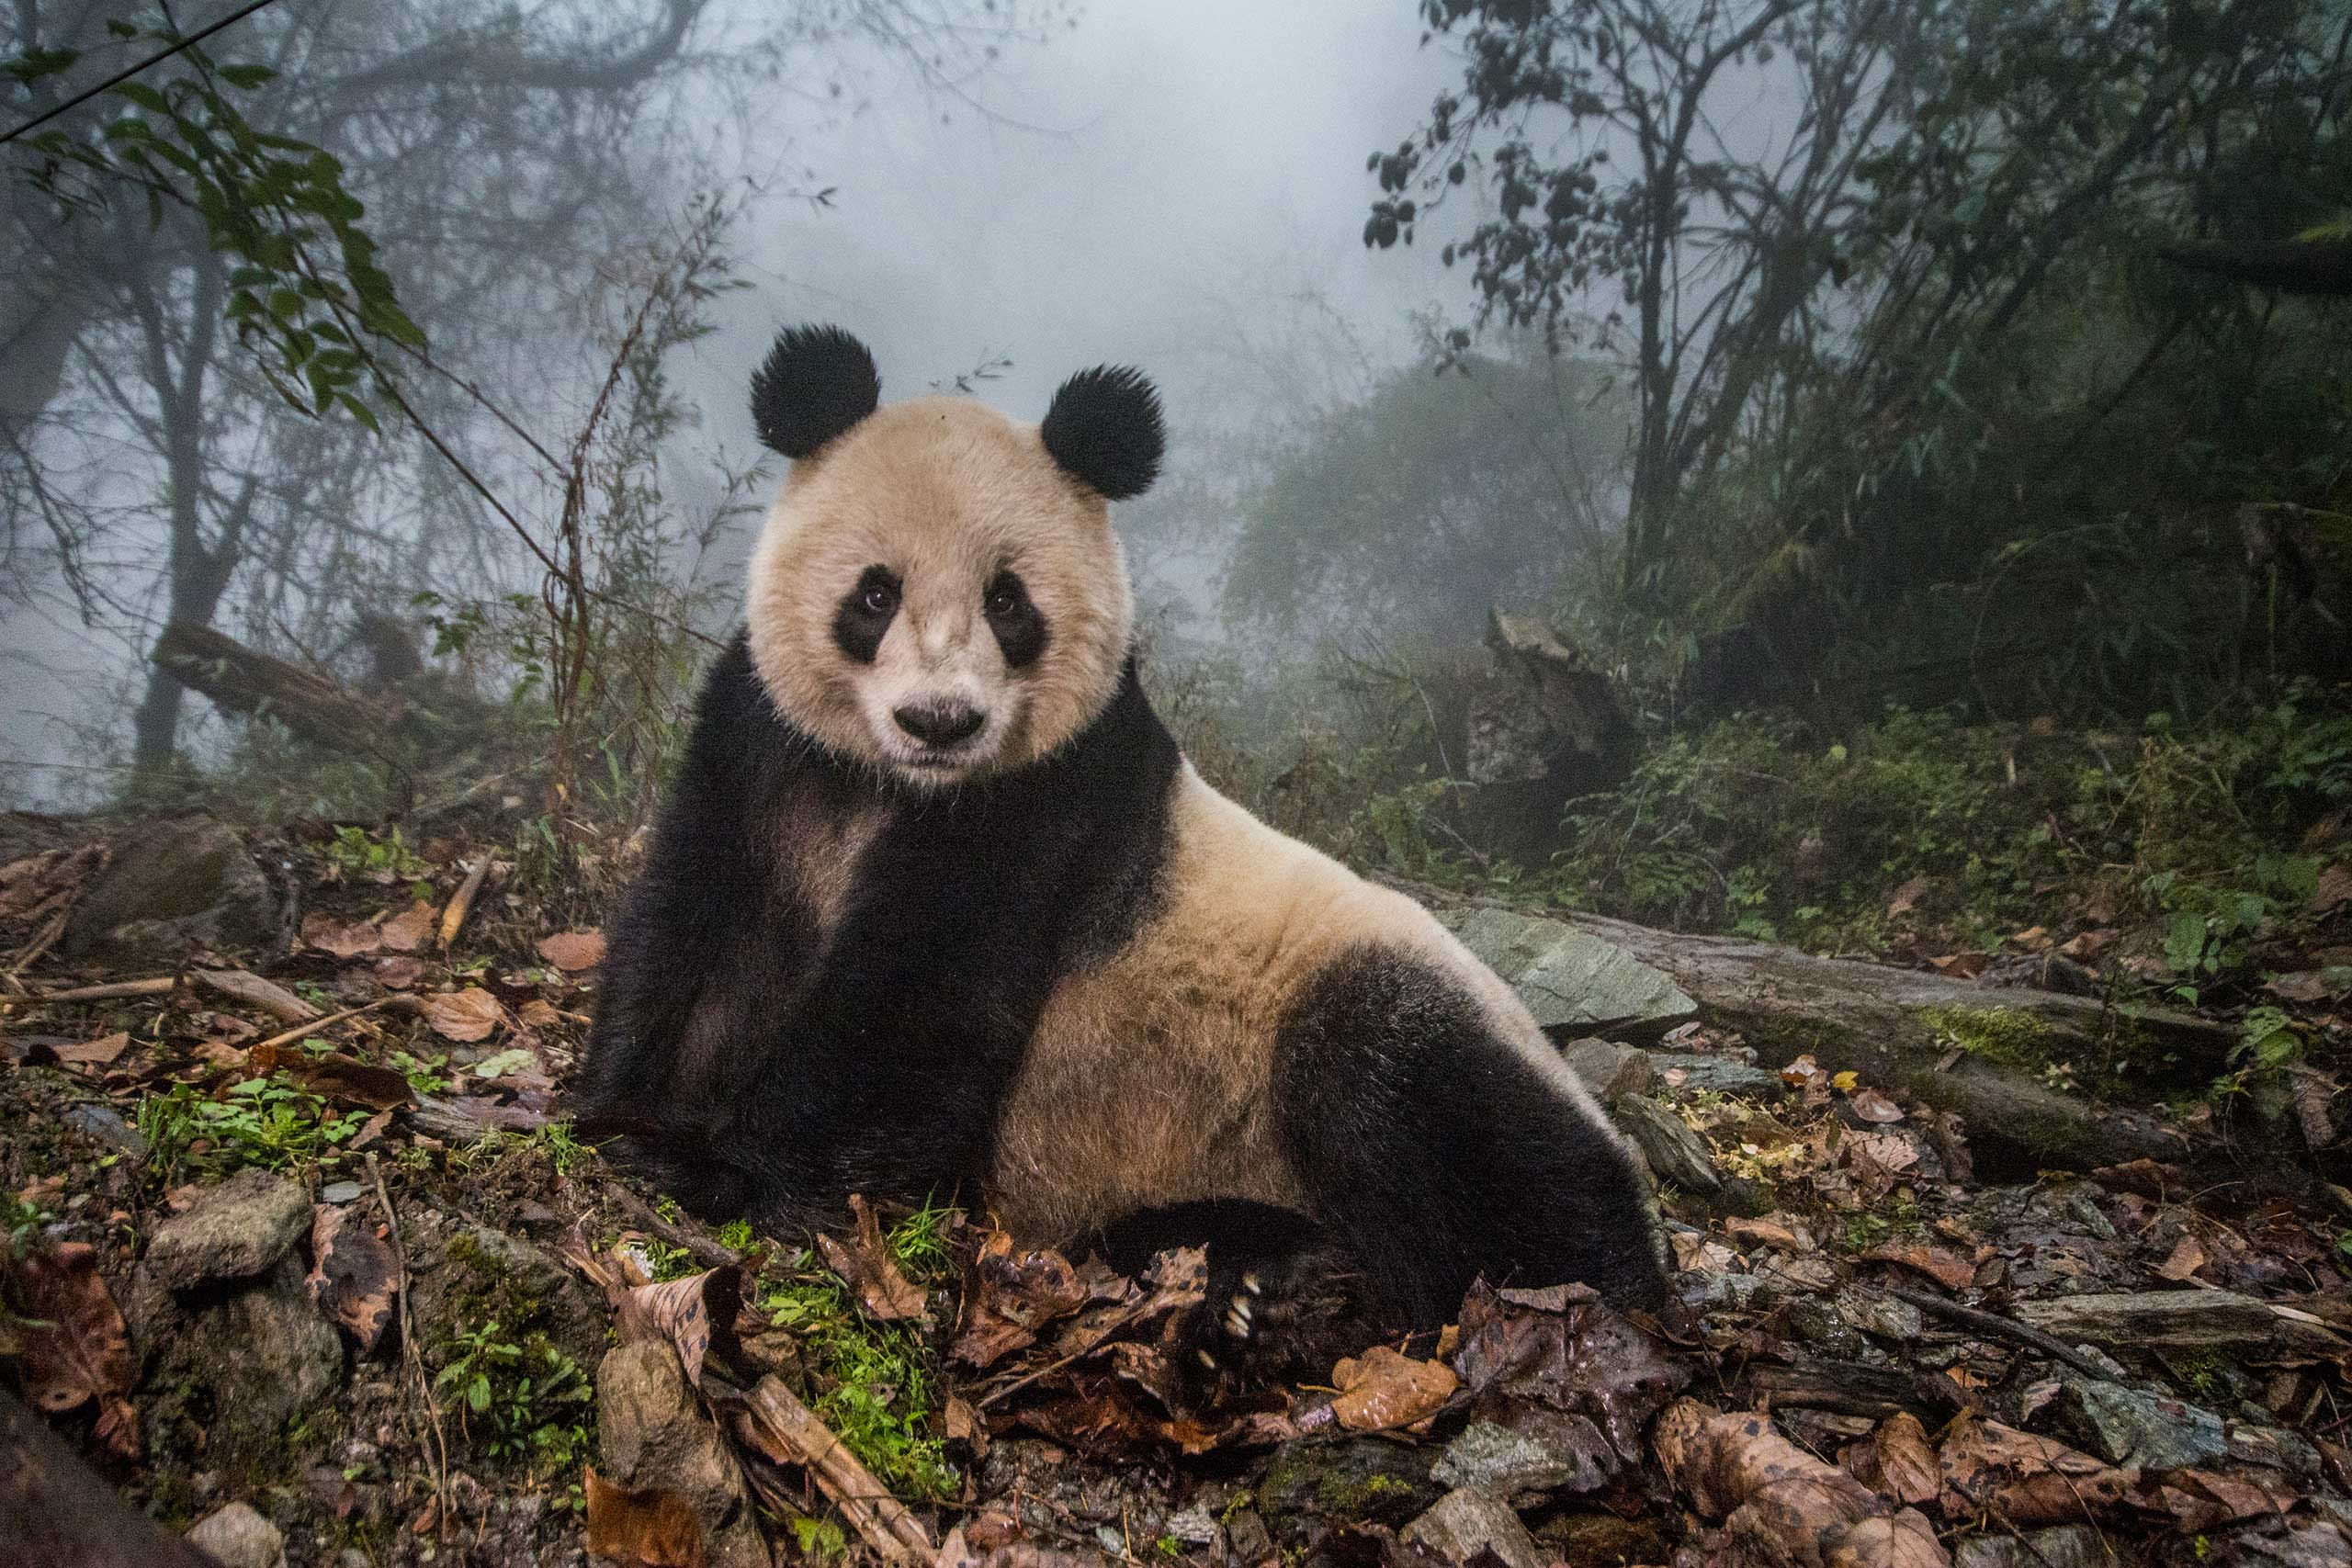 Ye Ye, a 16-year-old giant panda, lounges in a massive wild enclosure at a conservation center in Wolong Nature Reserve.